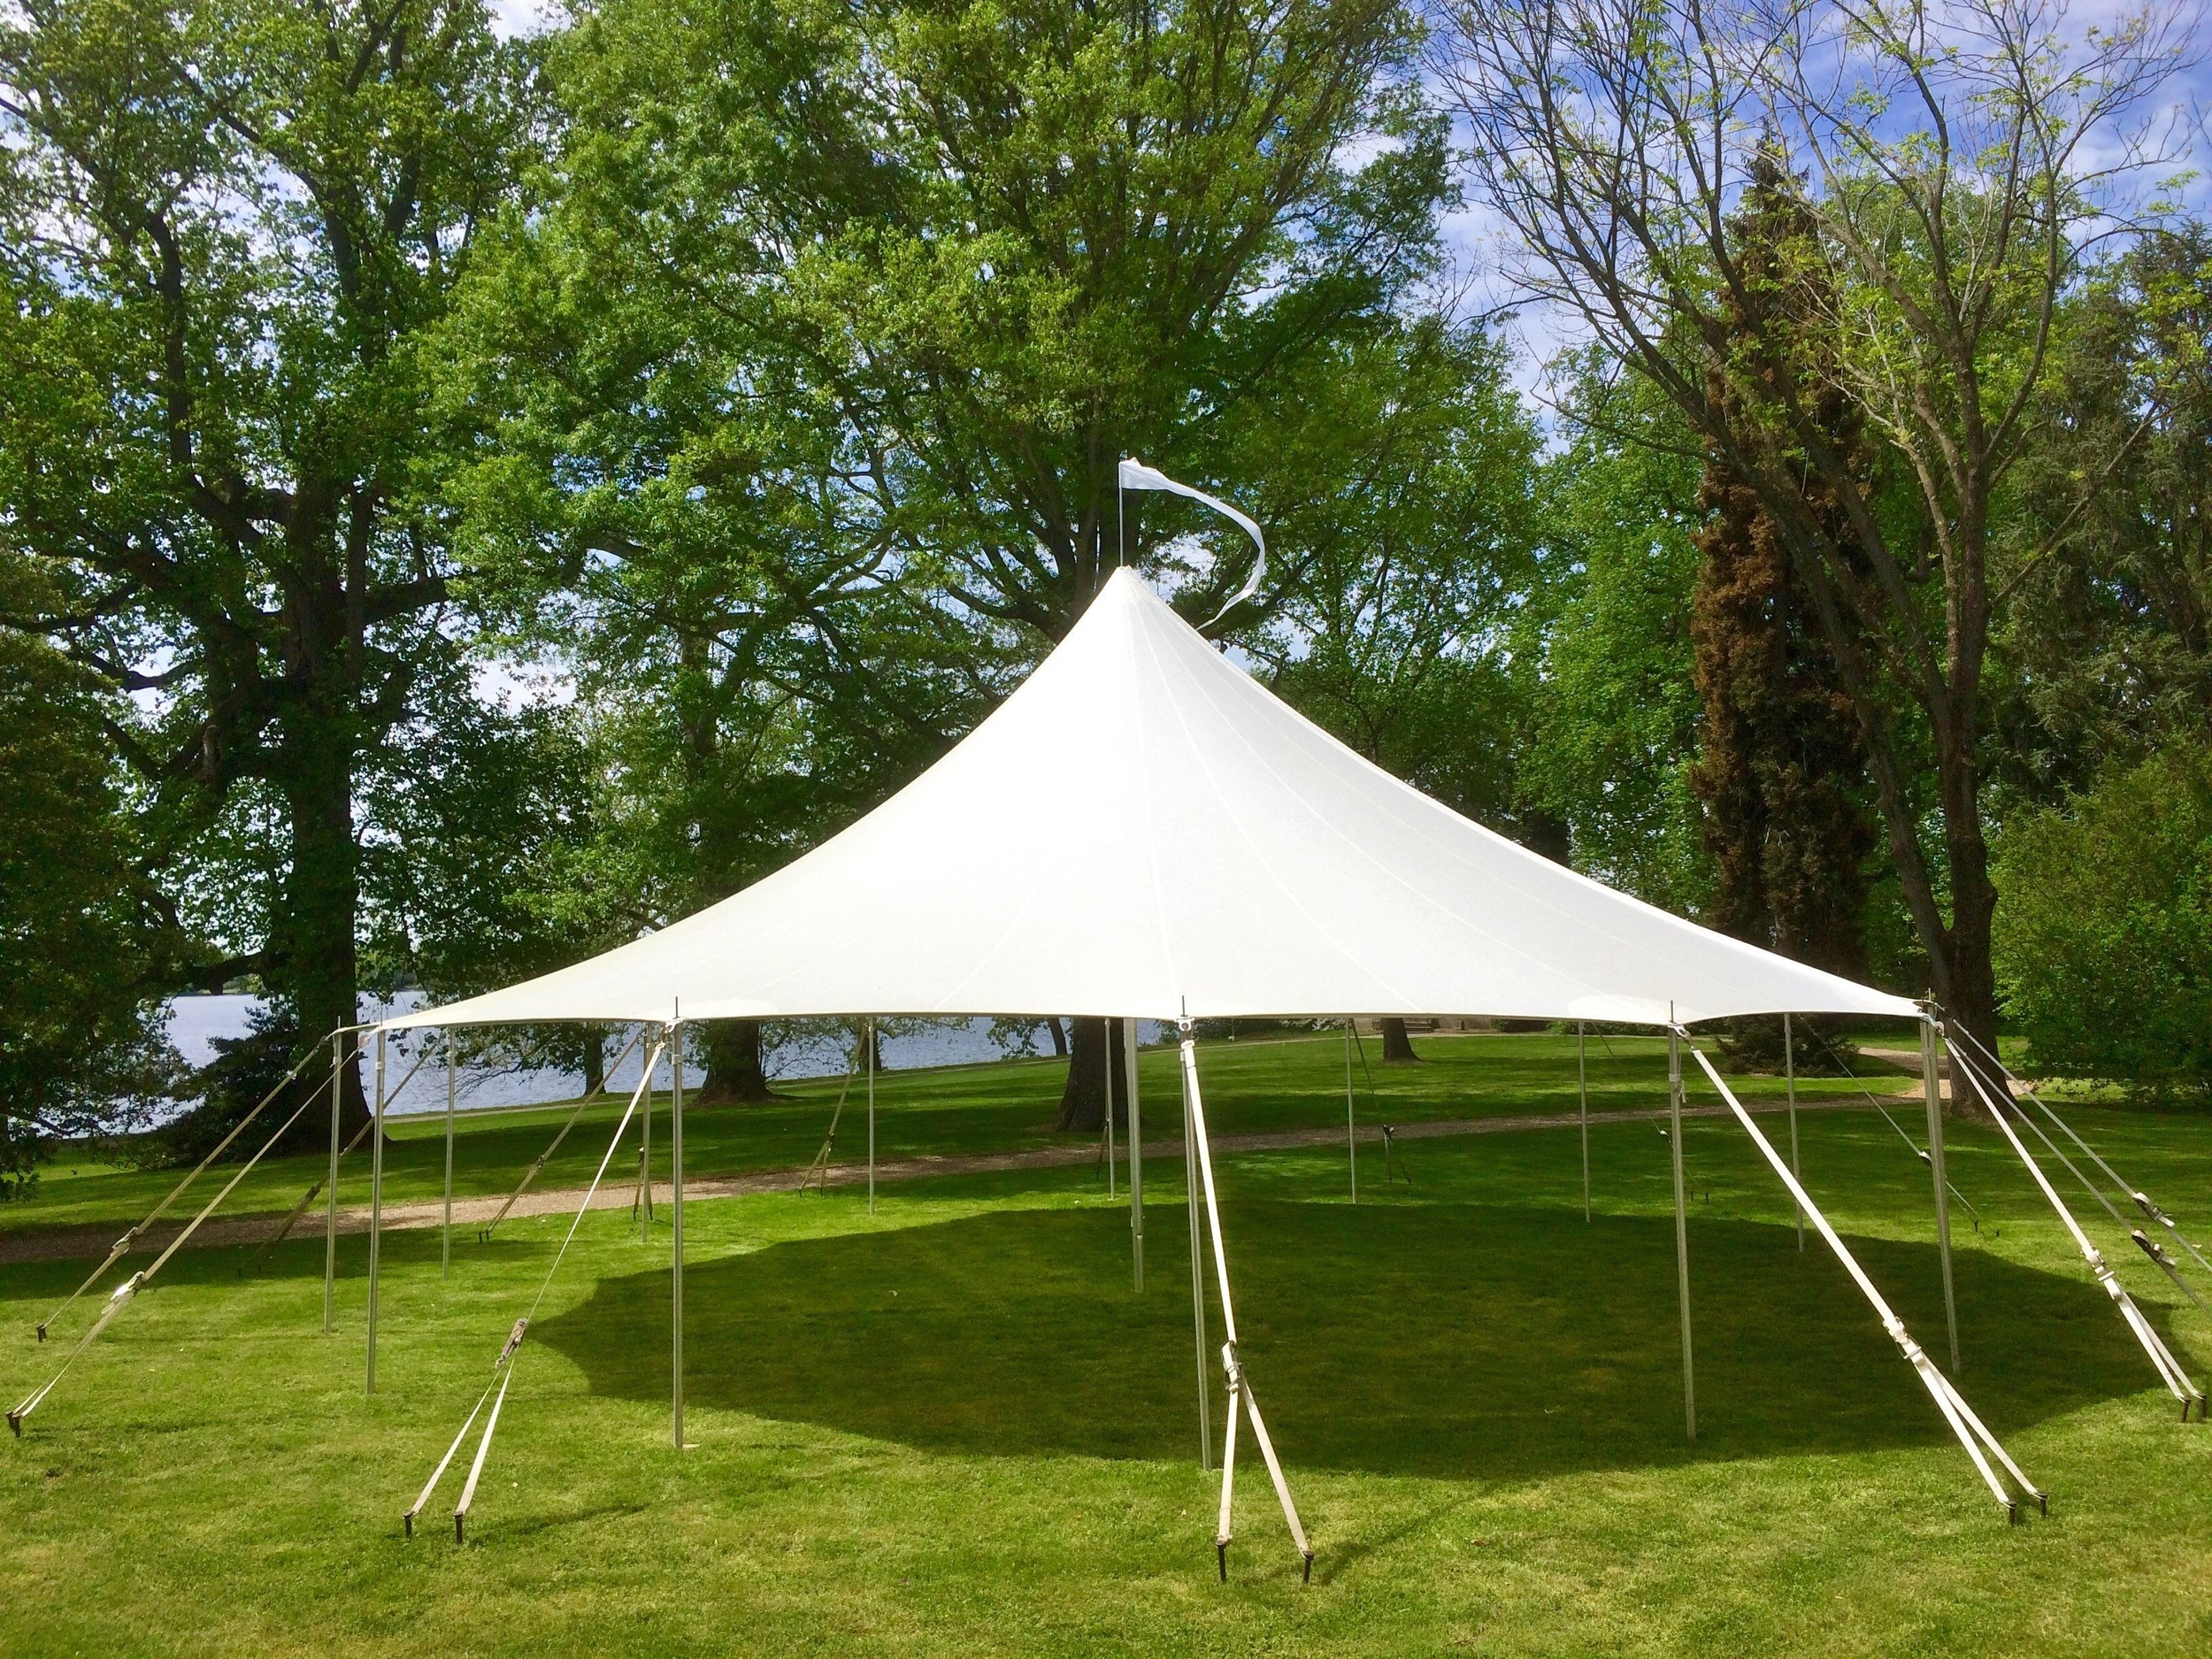 Beautiful Sailcloth tent for rent in Lansdale, PA